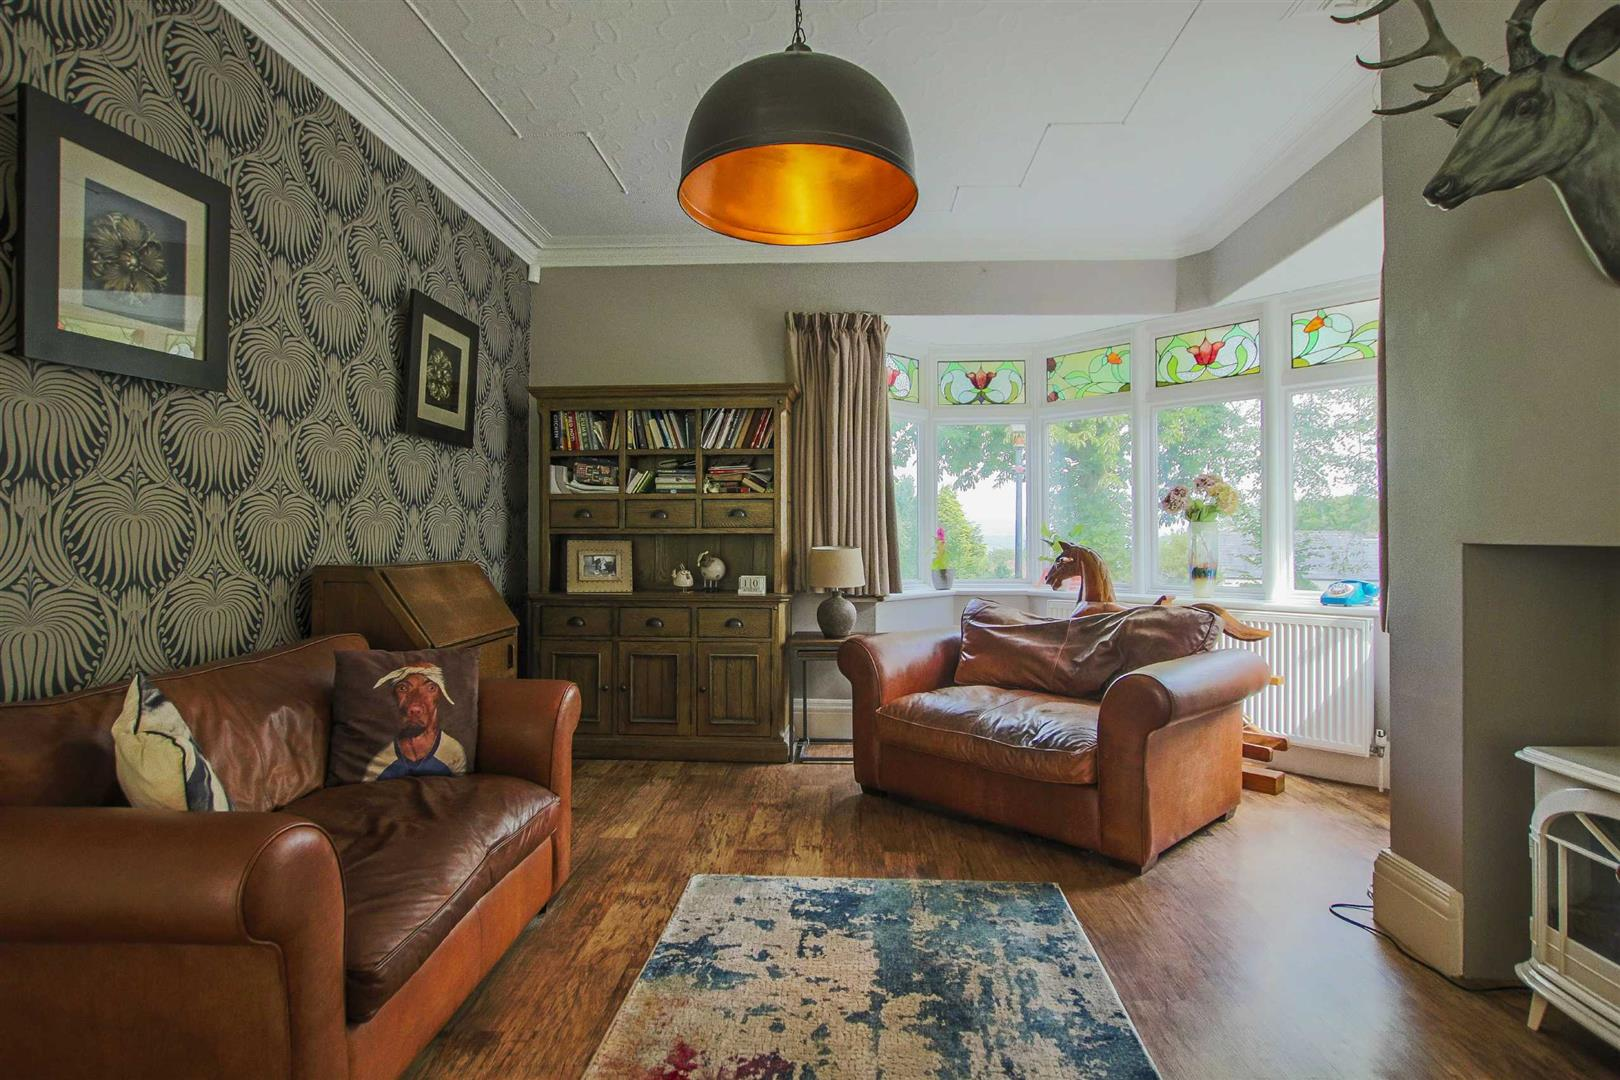 4 Bedroom Detached House For Sale - Image 5